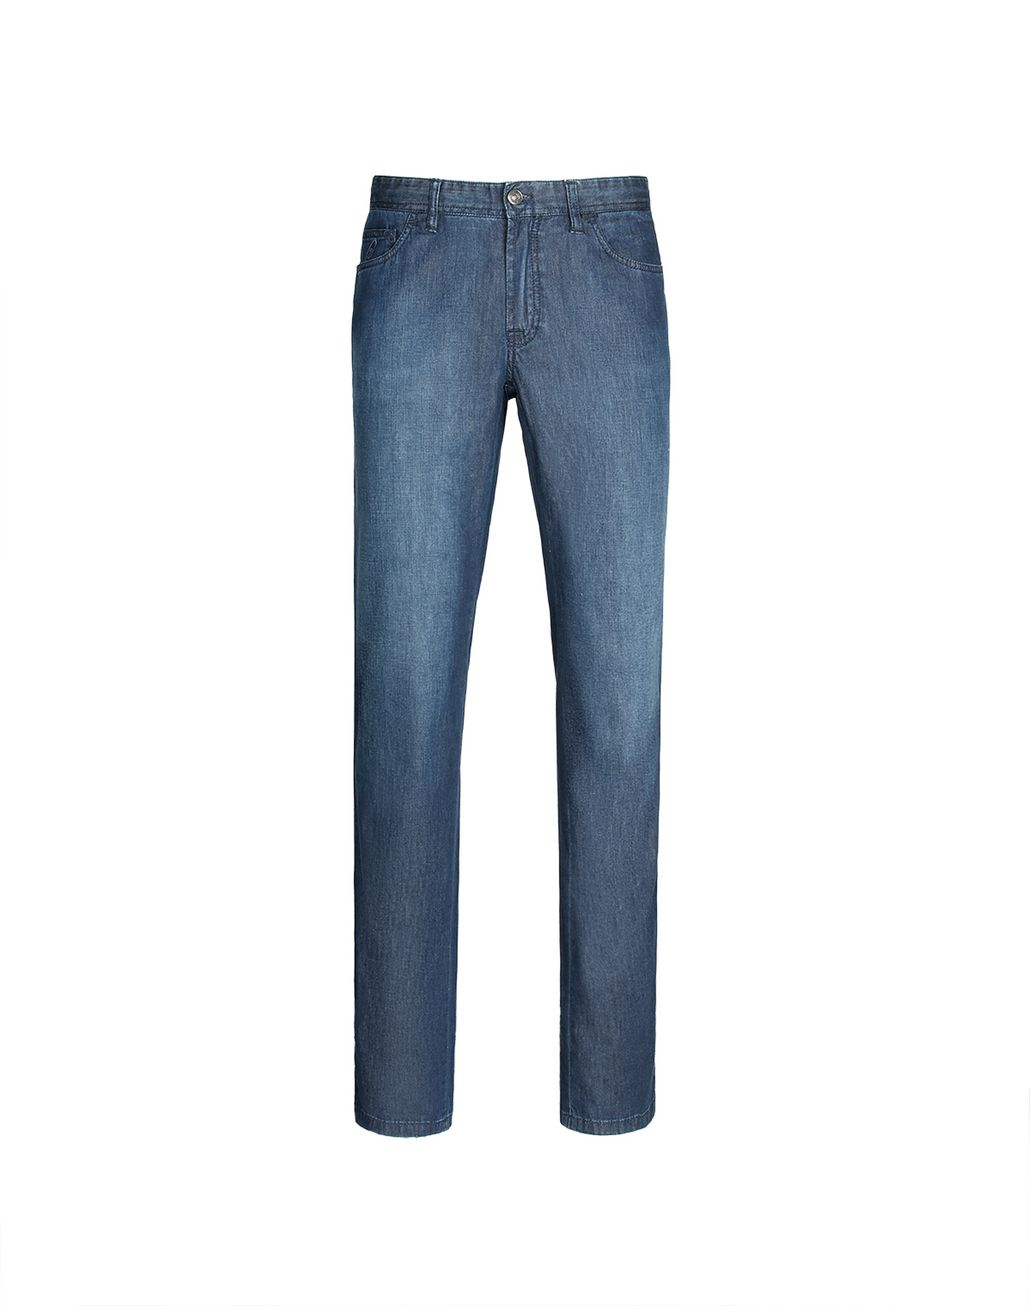 BRIONI Navy-Blue Comfort-Fit Chamonix Jeans  Denim Man f